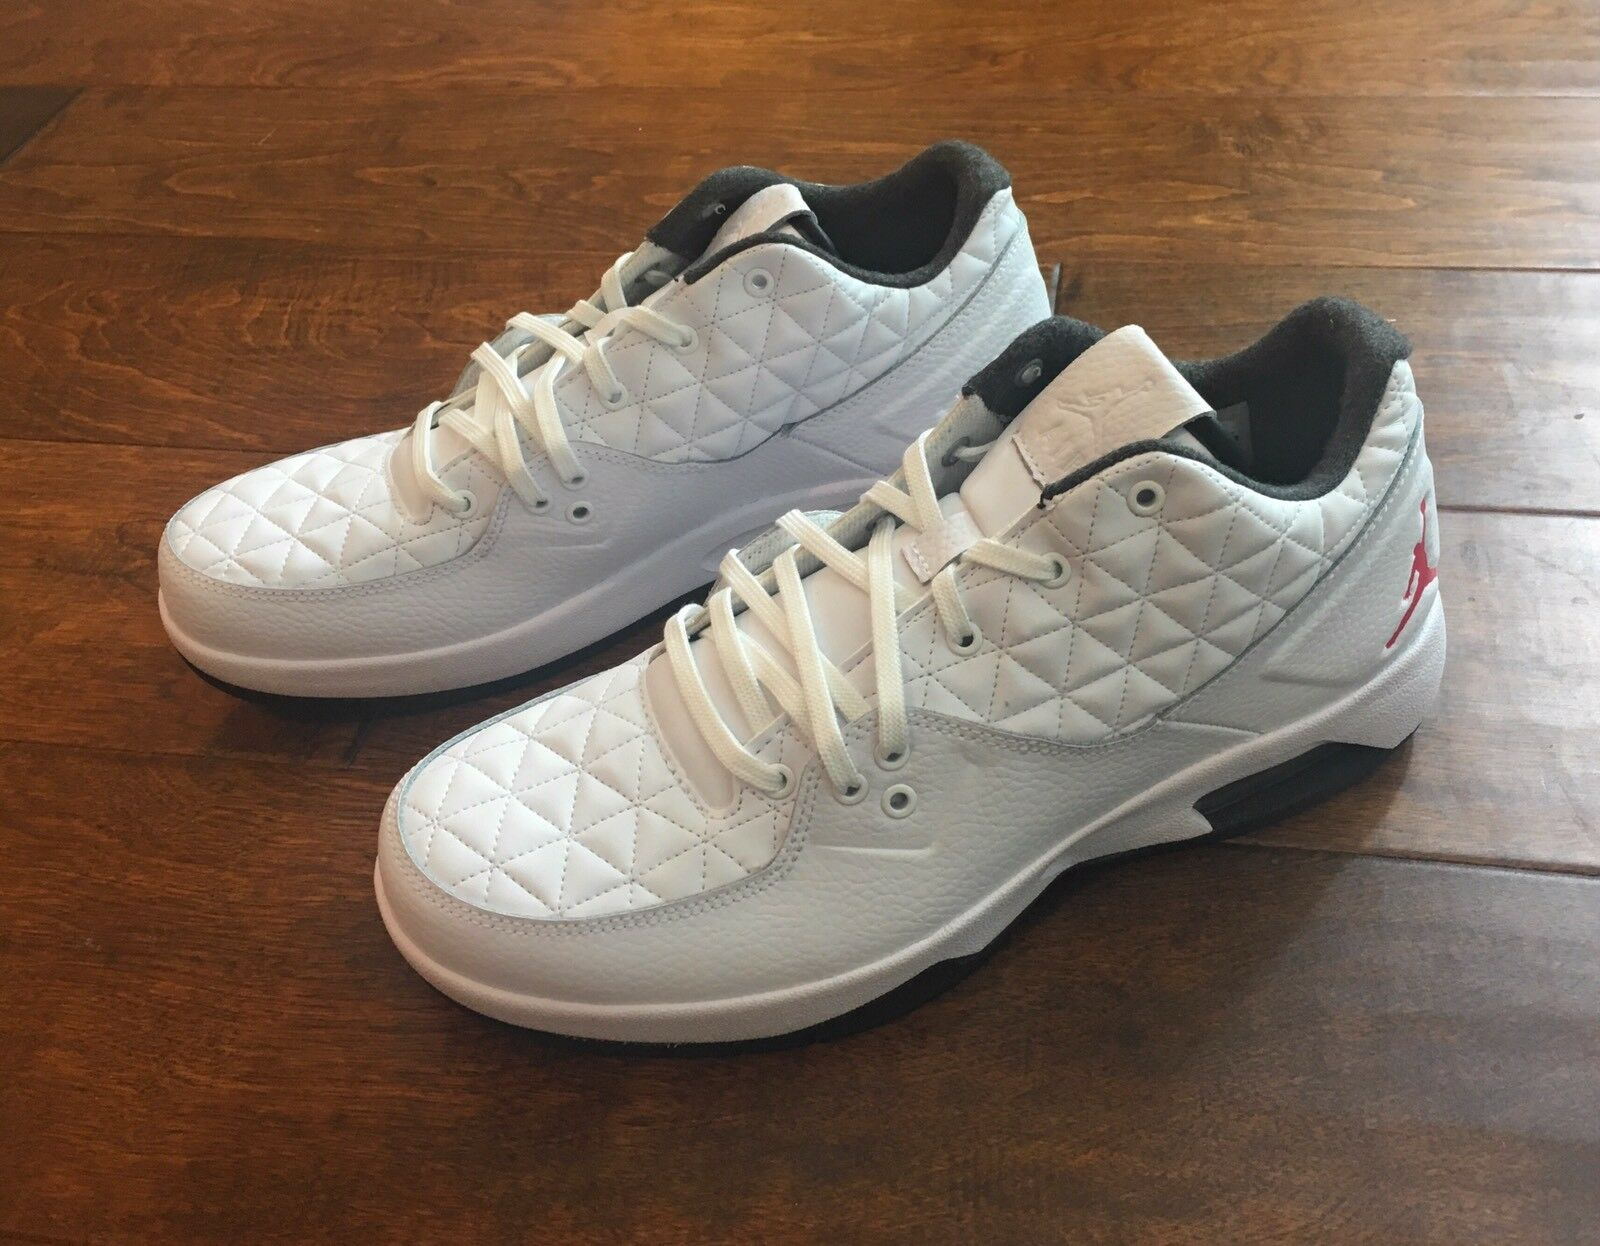 Nike Air Jordan Clutch Men's 11 Basketball Shoes White Gym Red Black 845043-101 The latest discount shoes for men and women